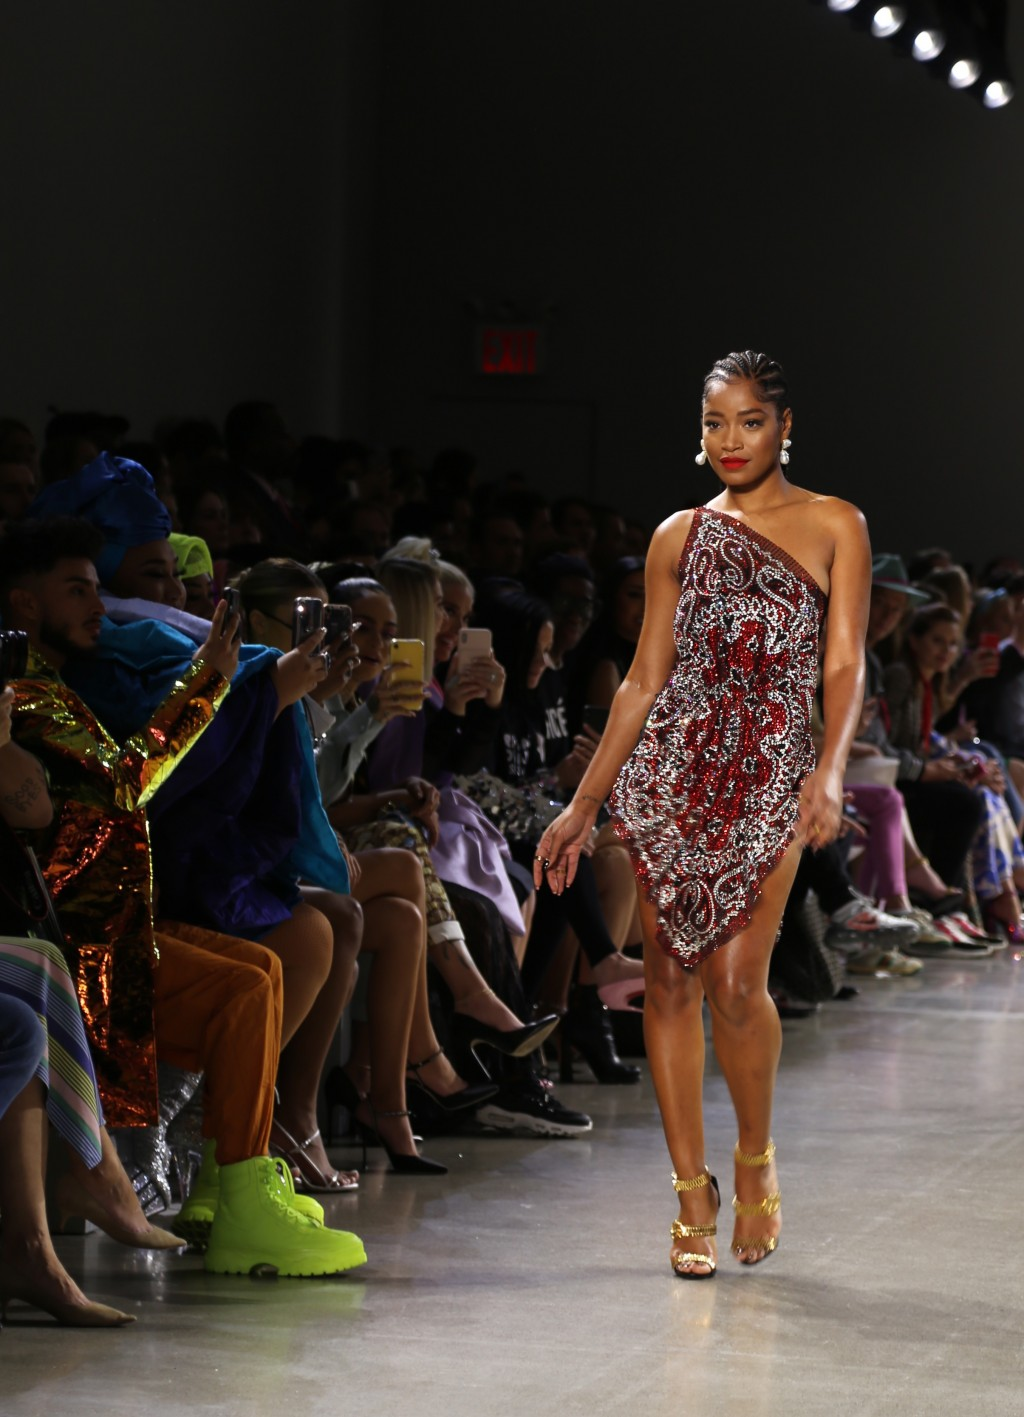 Actress Keke Palmer wears fashion from the Christian Cowan collection during Fashion Week in New York on Tuesday, Sept. 10, 2019. (AP Photo/Ragan Clar...